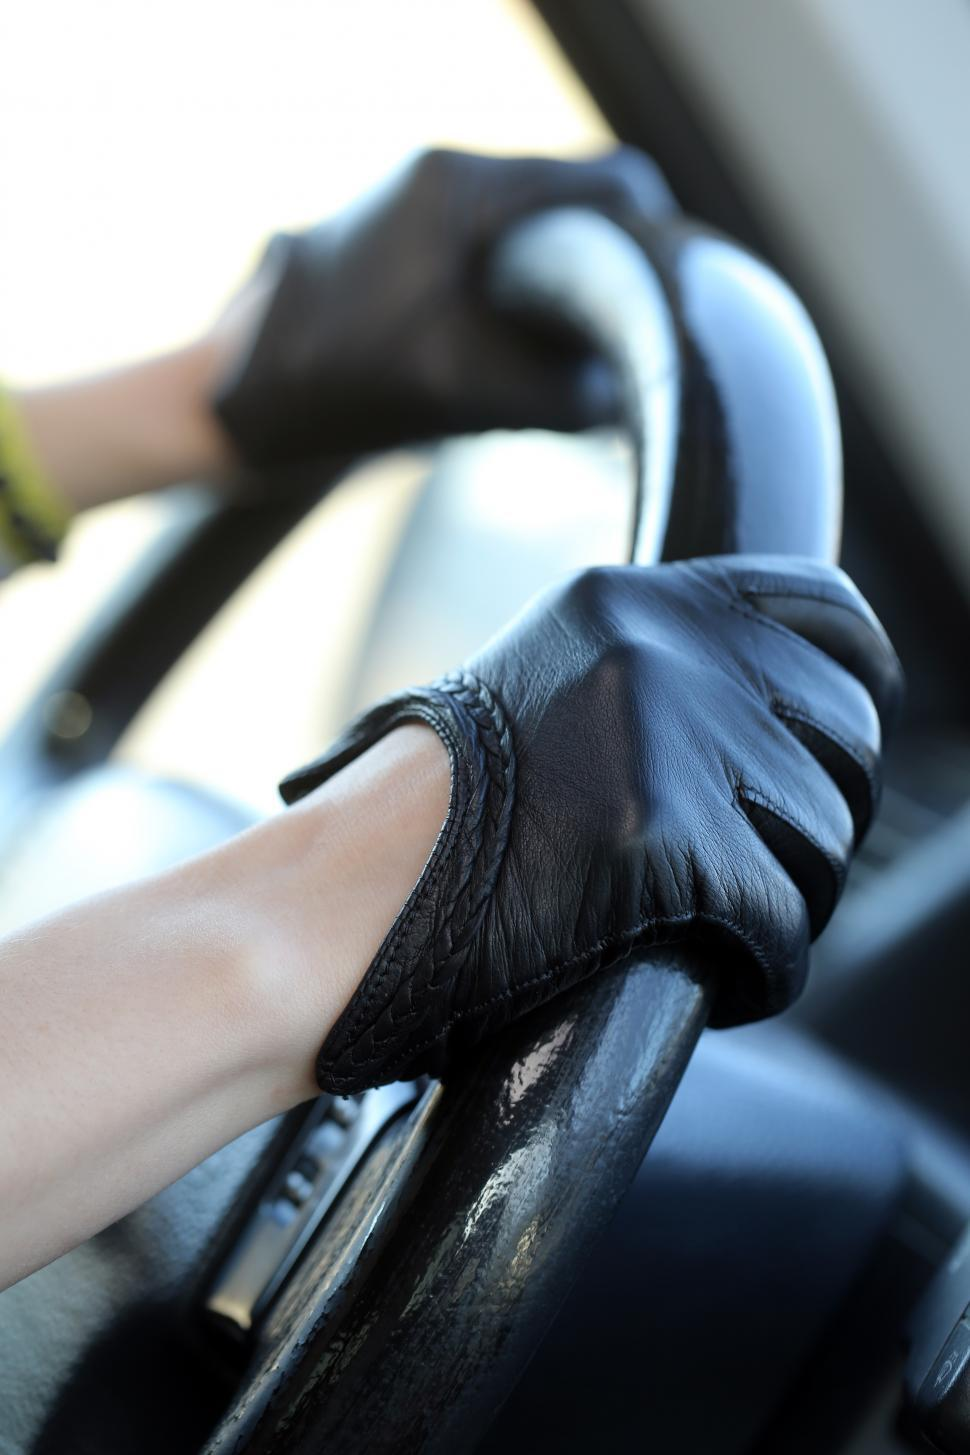 Download Free Stock HD Photo of Racer in leather gloves gripping steering wheel Online